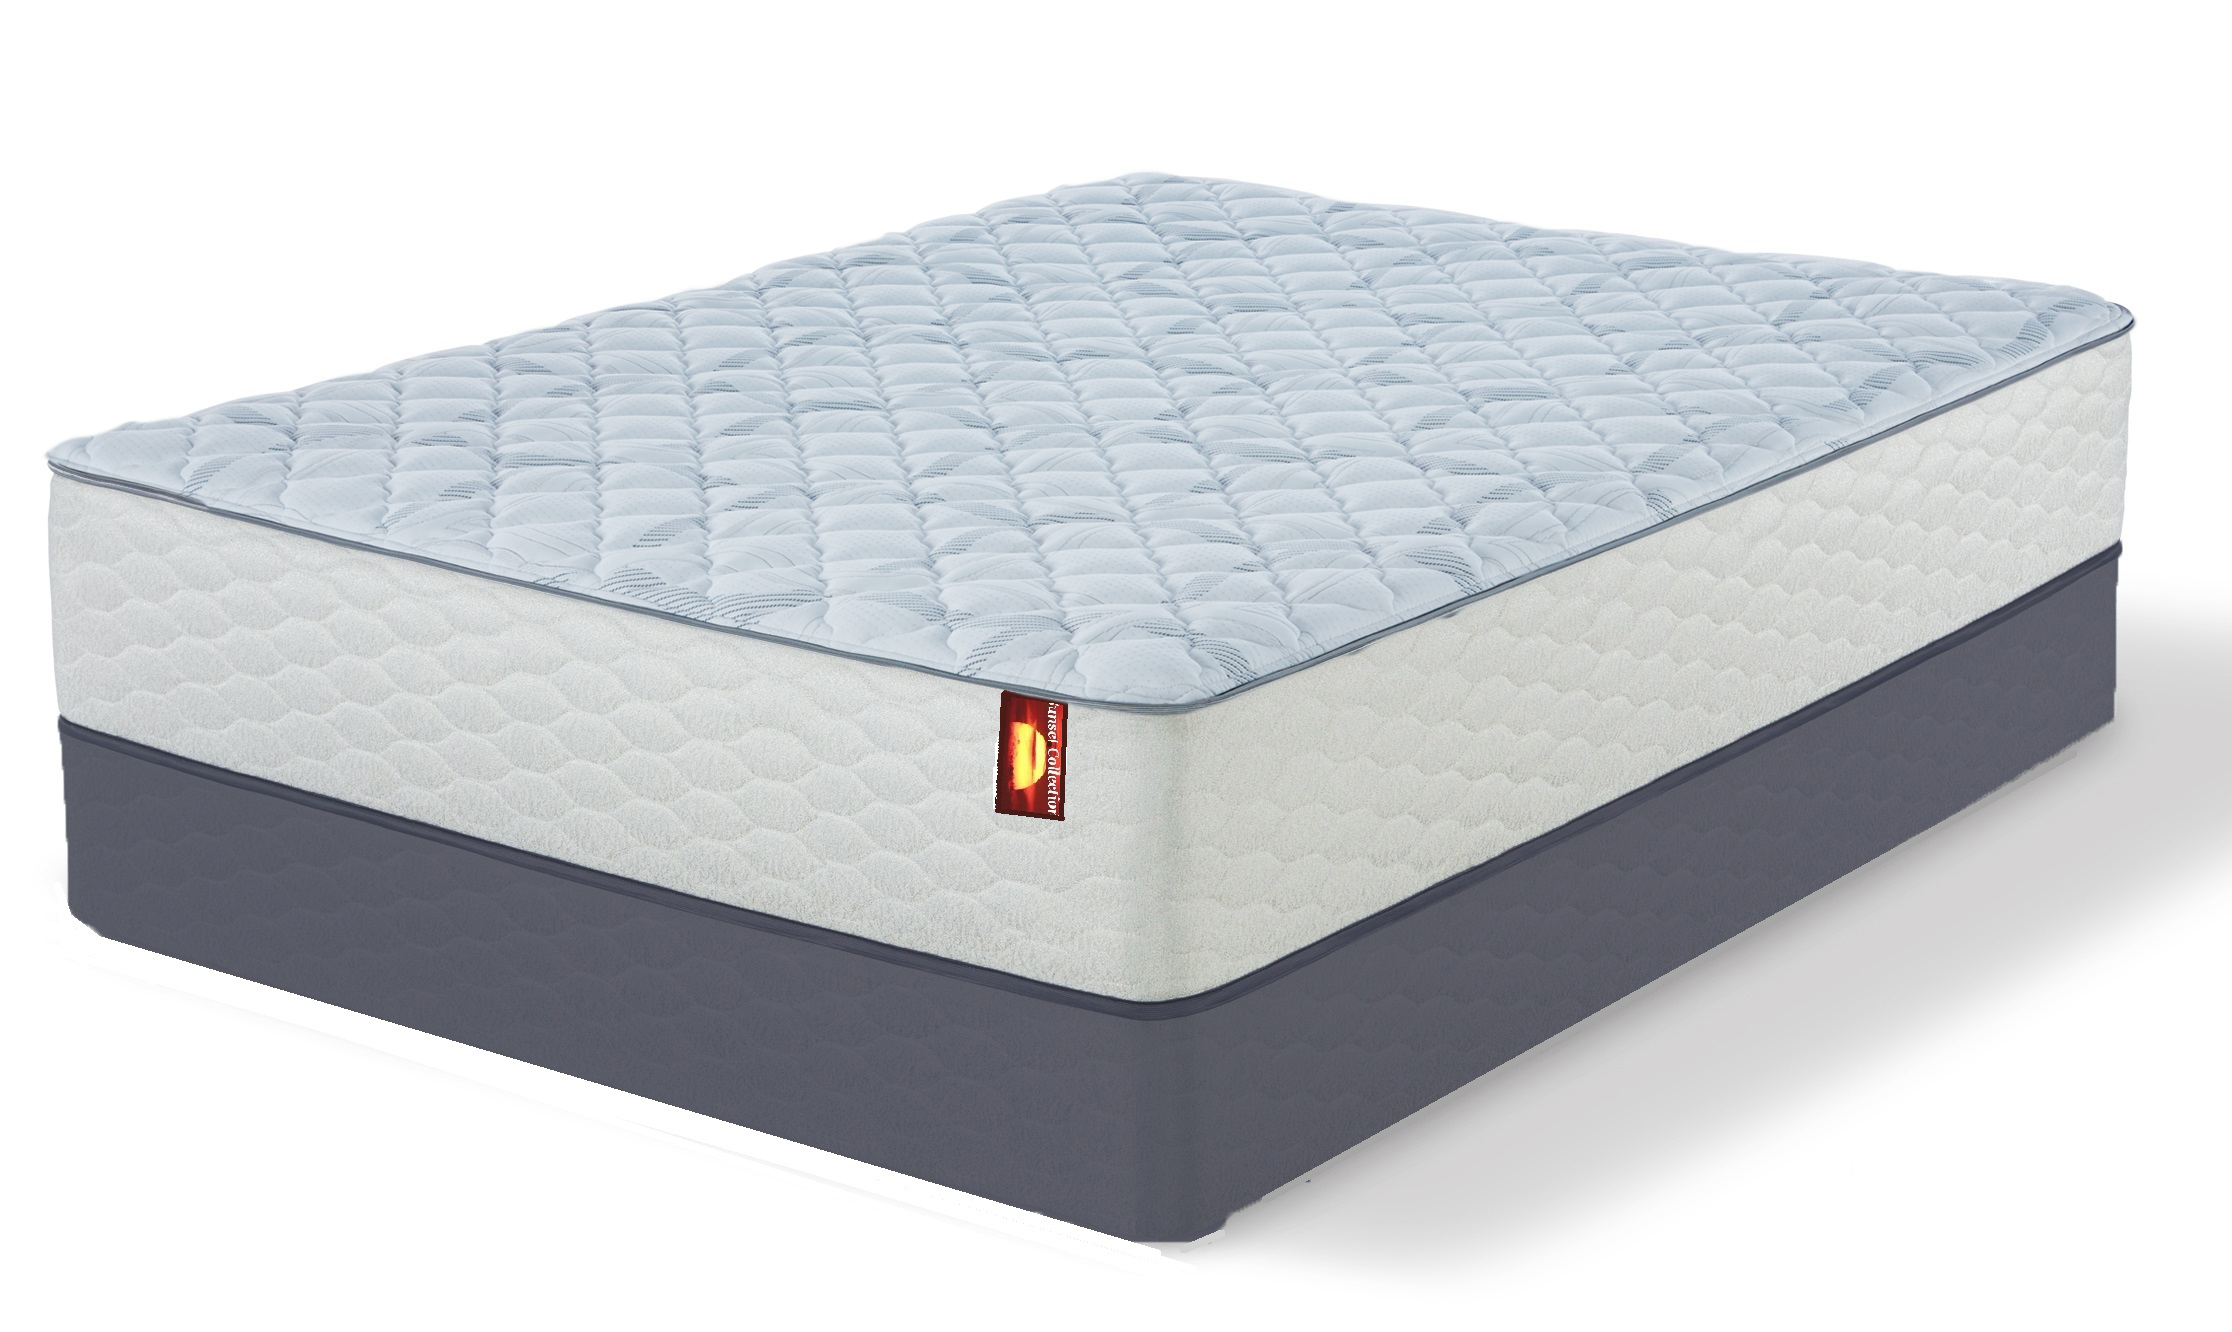 Salt Lake Mattress Serta Mattresses in Salt Lake City